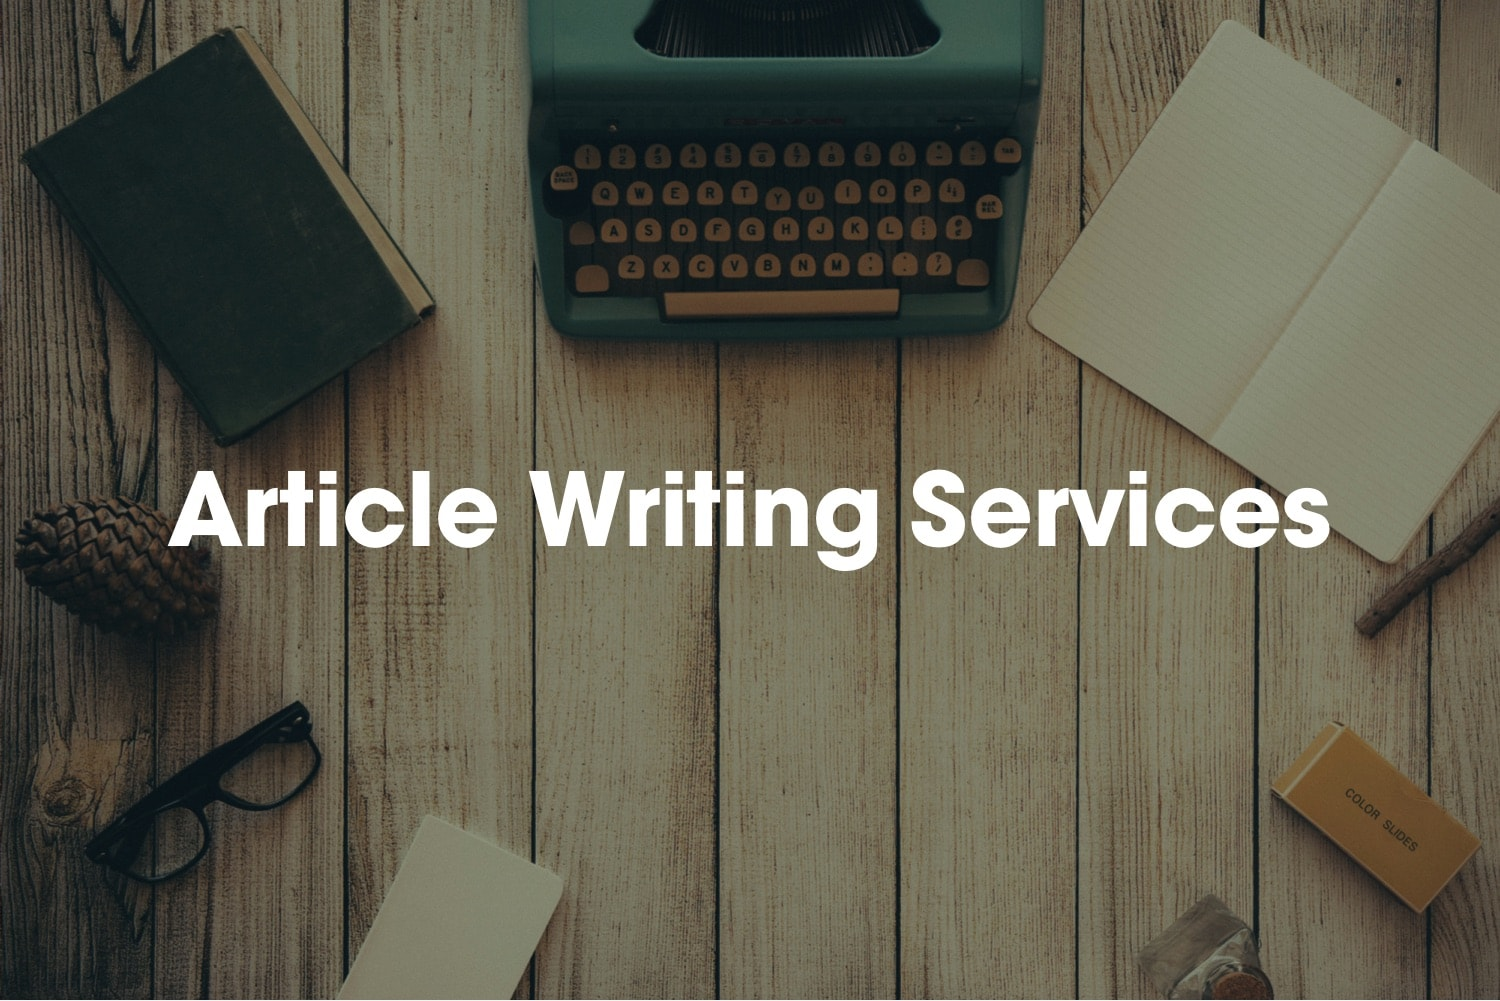 Writing services company